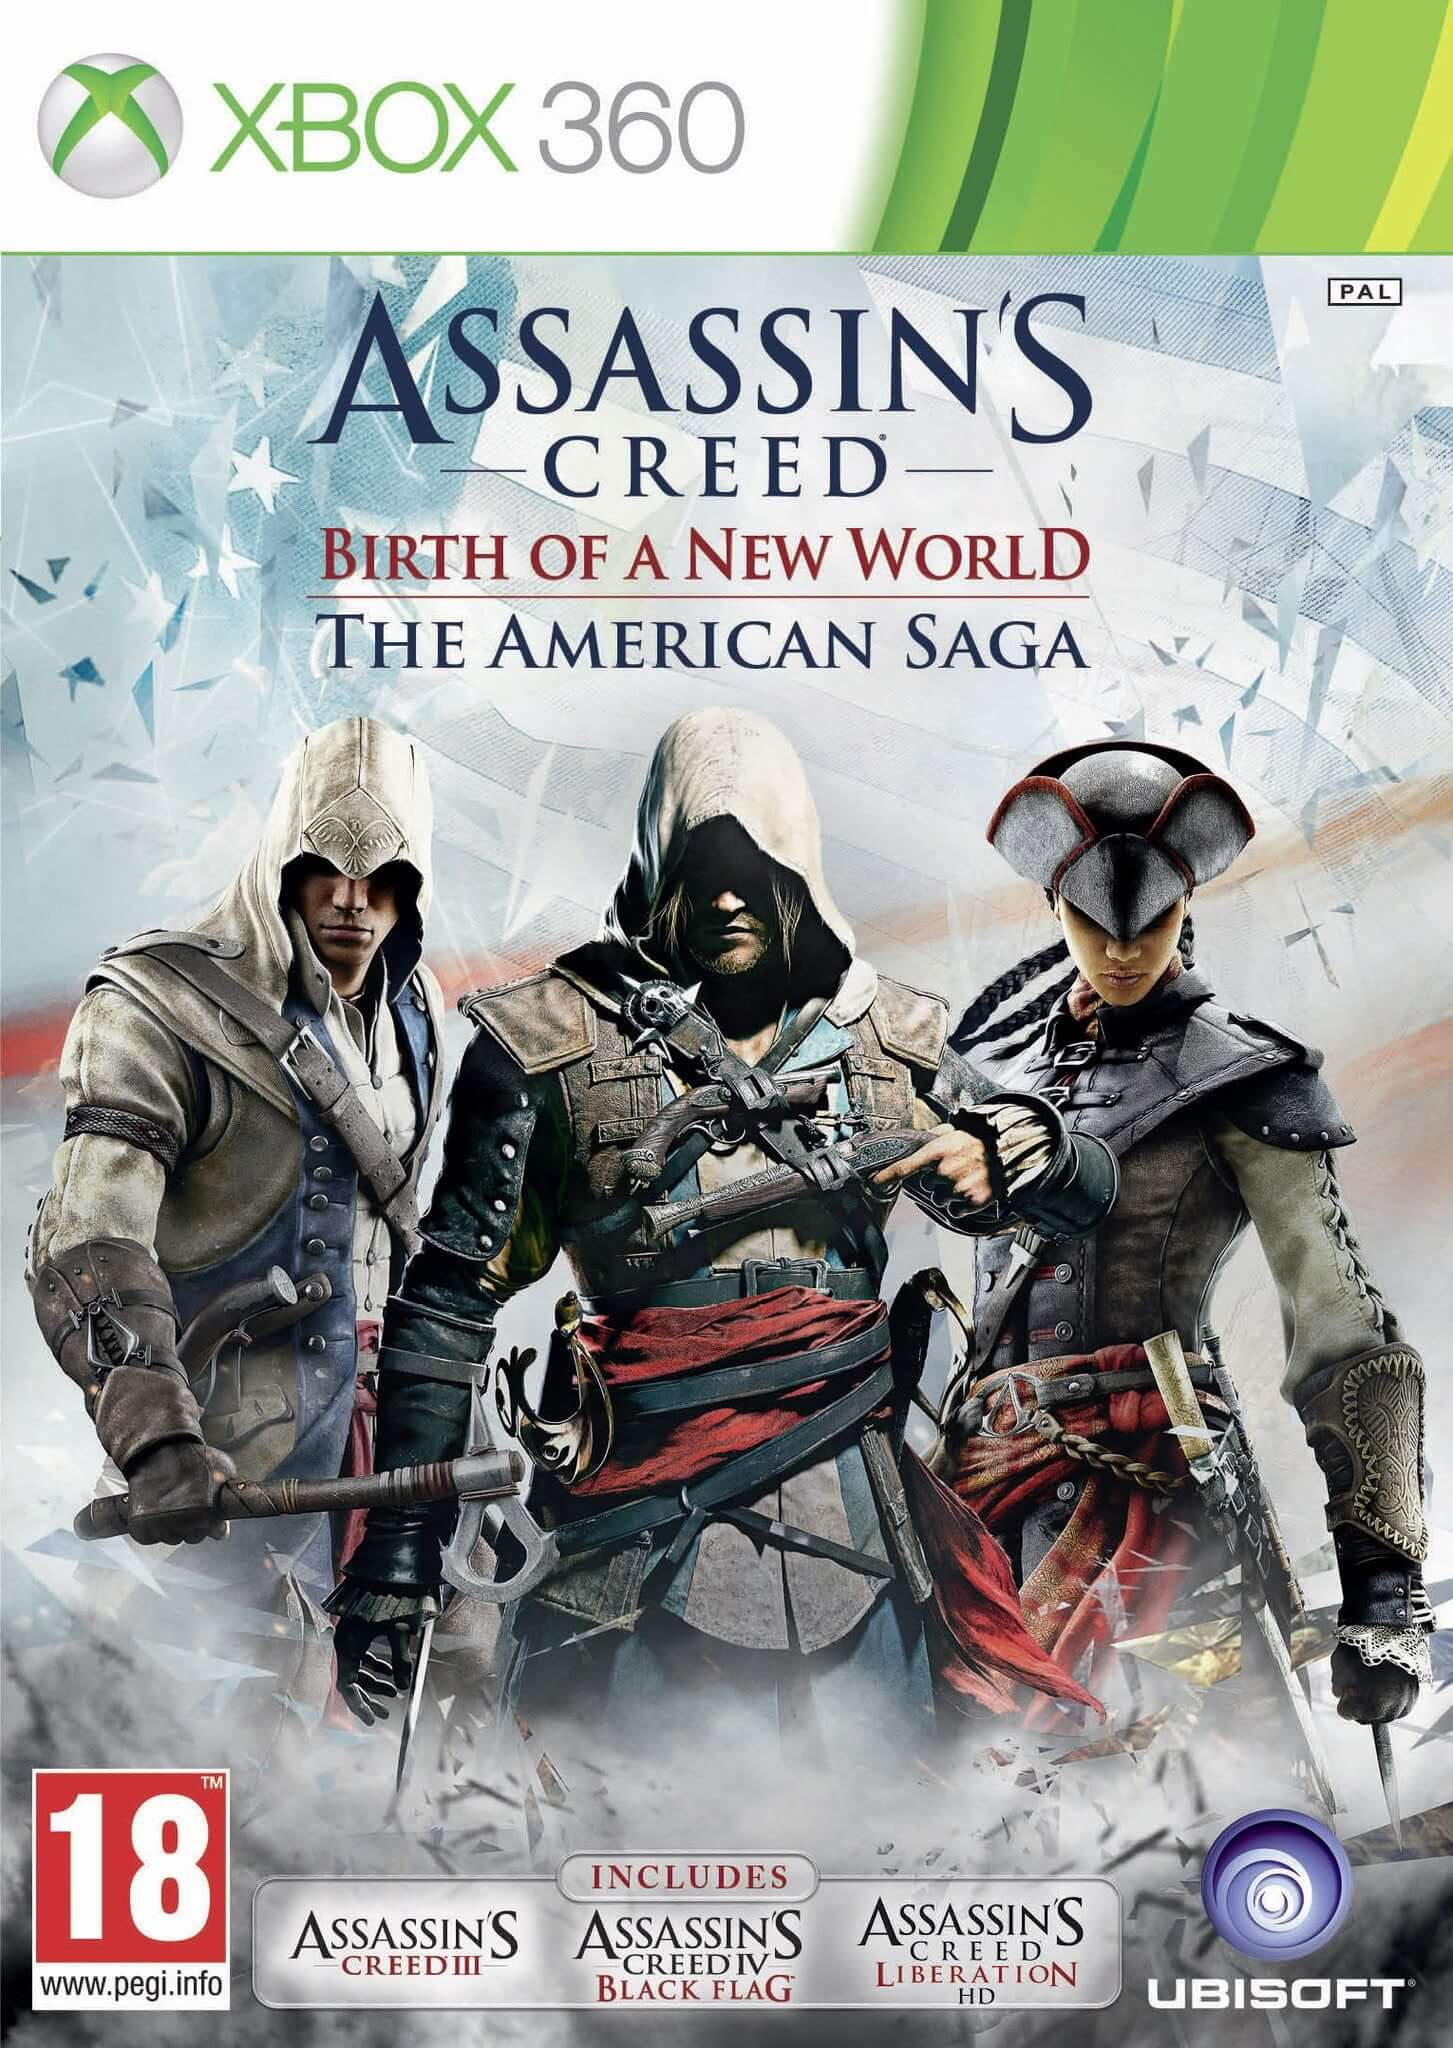 Buy Assassin's Creed Birth Of New World (XBOX 360) a XBOX 360 Game from ShamyStores